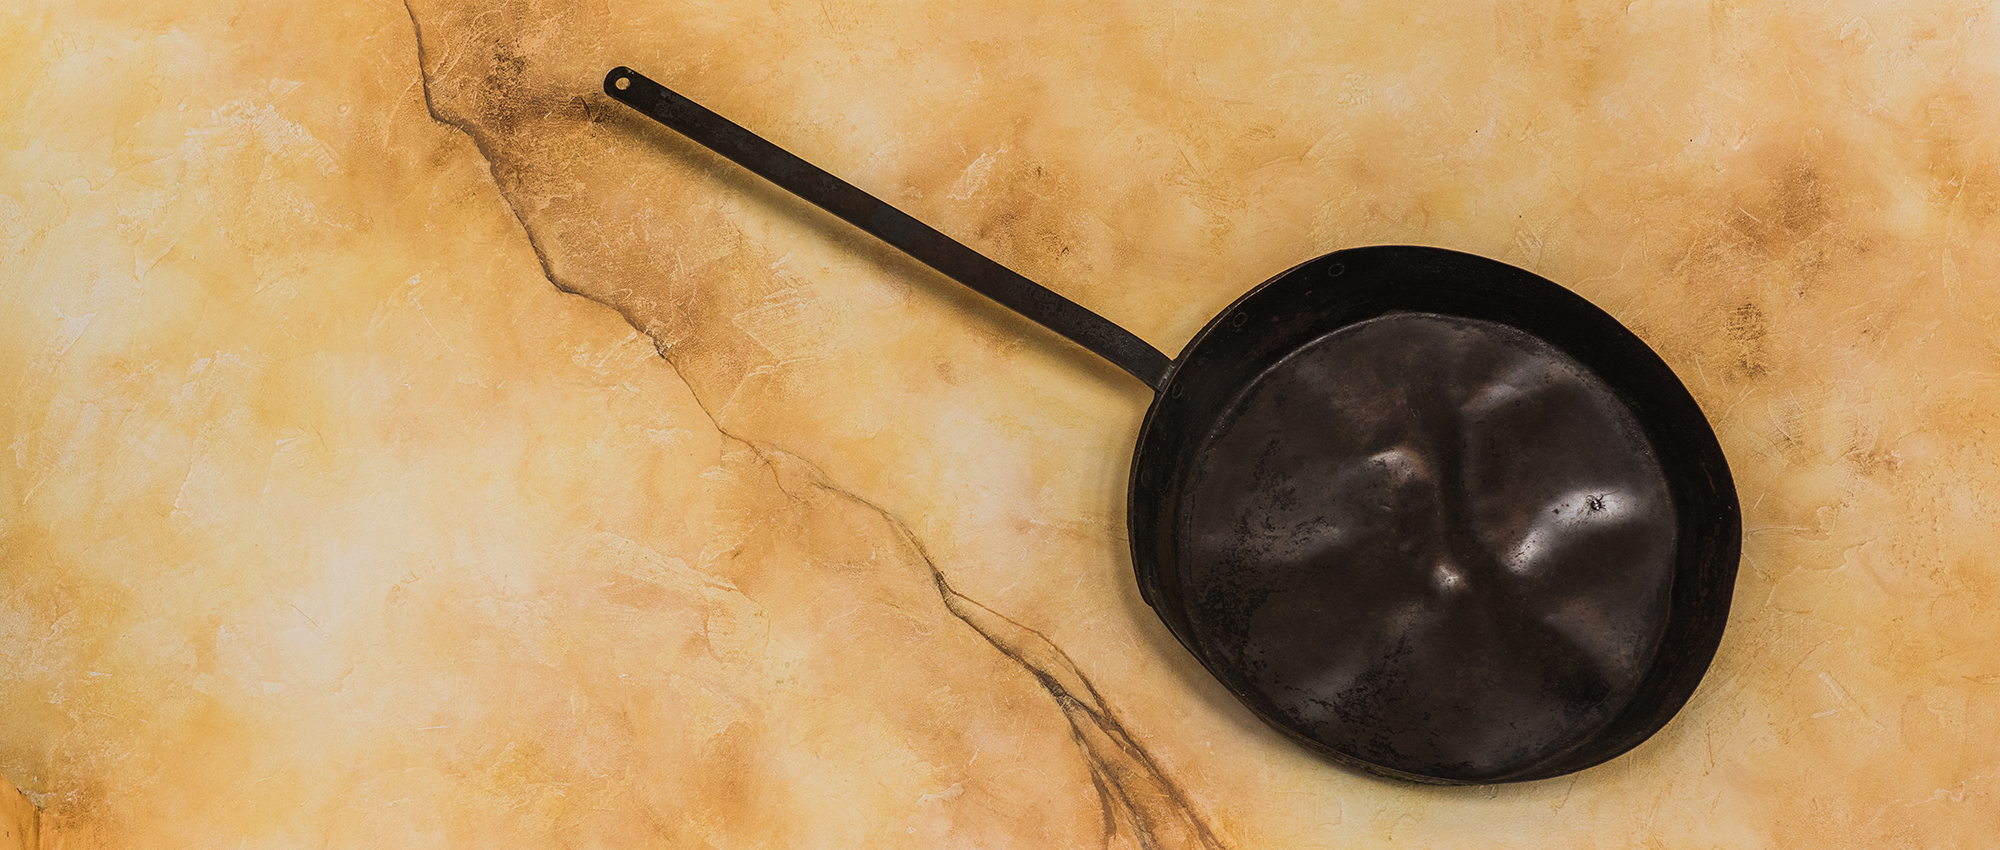 a large, black frying pan with large dents